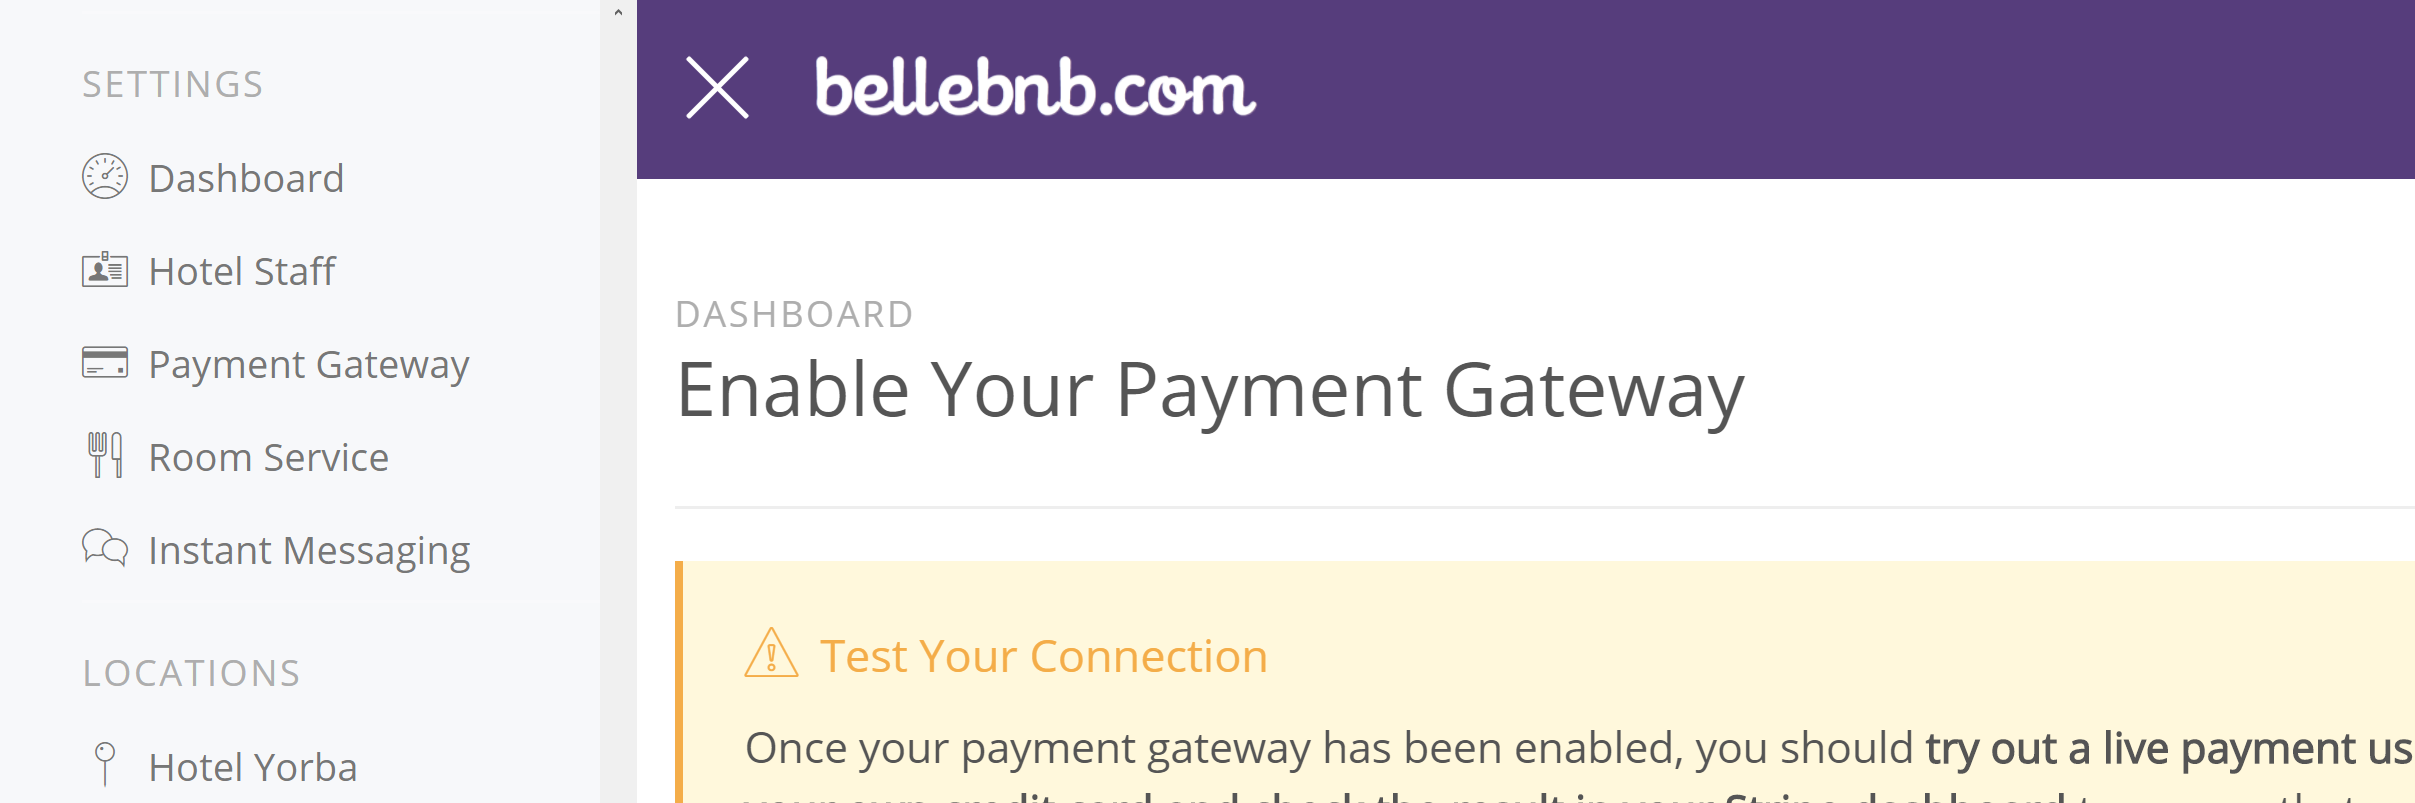 Hotel Payment Gateways Part I: Bellebnb Concepts You can connect your Payment Gateway to process live credit card payments directly from your Front Desk manager. Before you do this, you should be familiar with a few definitions and concepts found in this blog post. Hotel Management Software in the Cloud